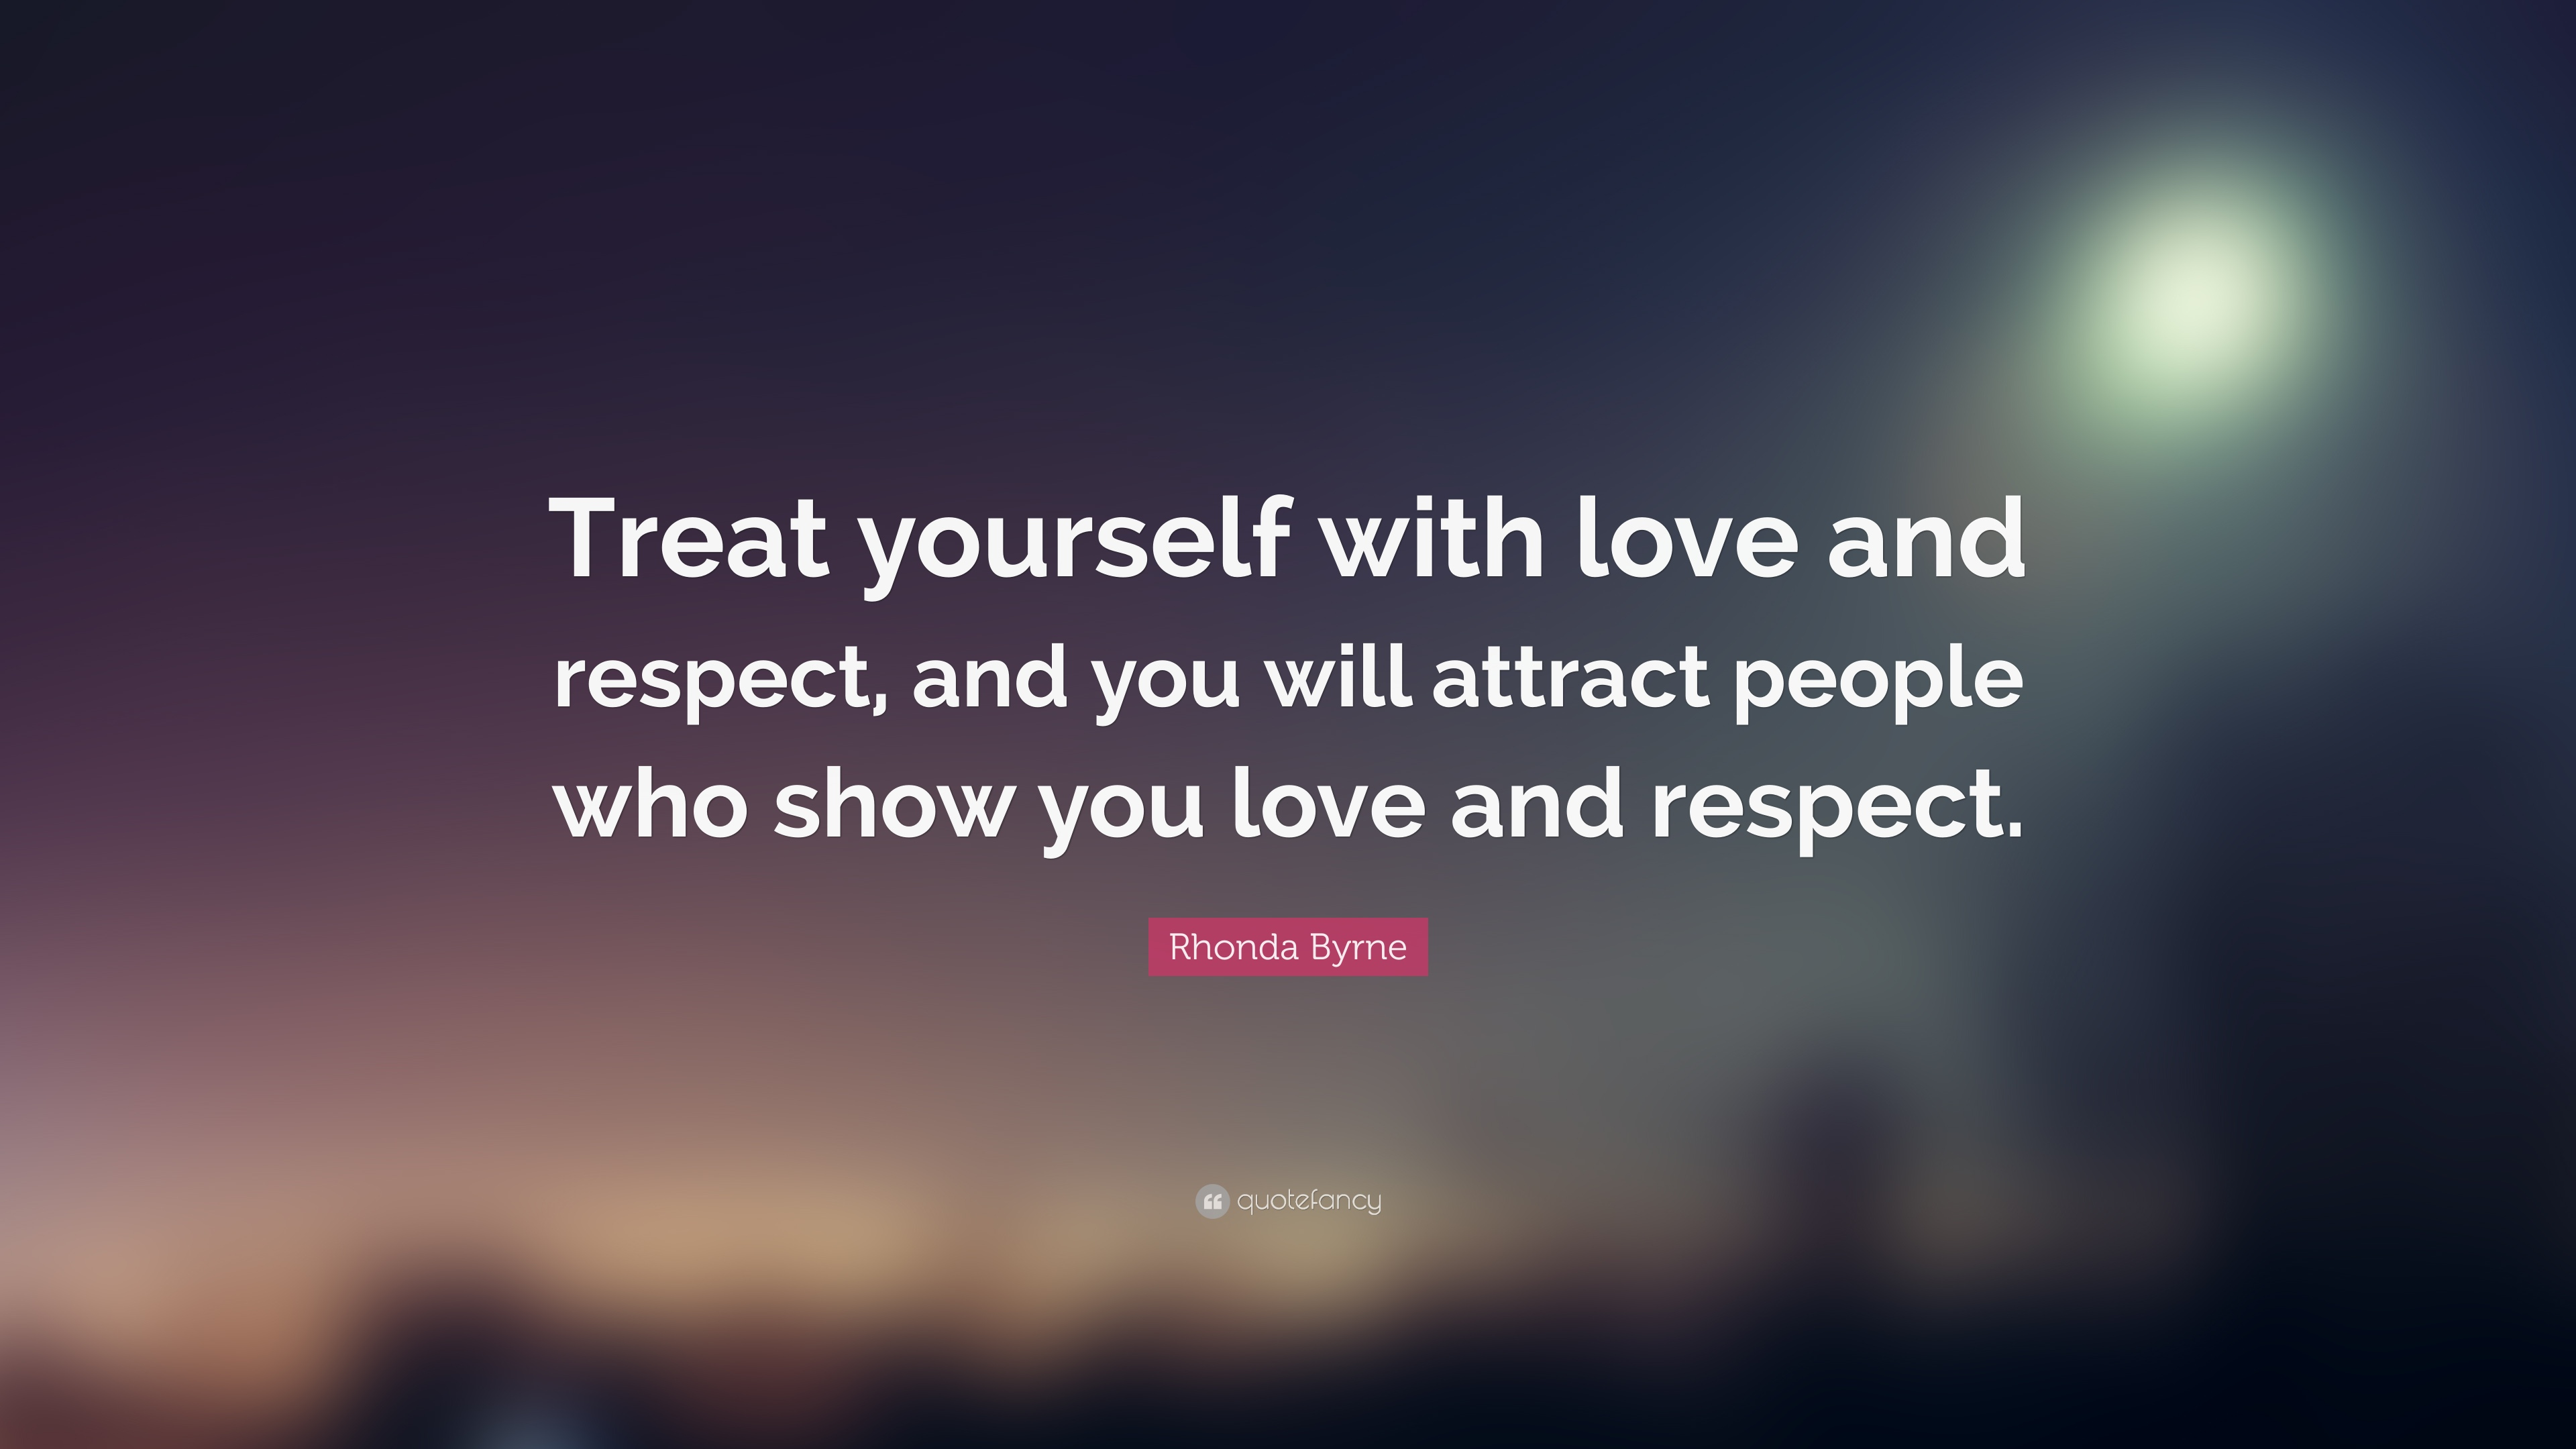 Marvelous Rhonda Byrne Quote: U201cTreat Yourself With Love And Respect, And You Will  Attract